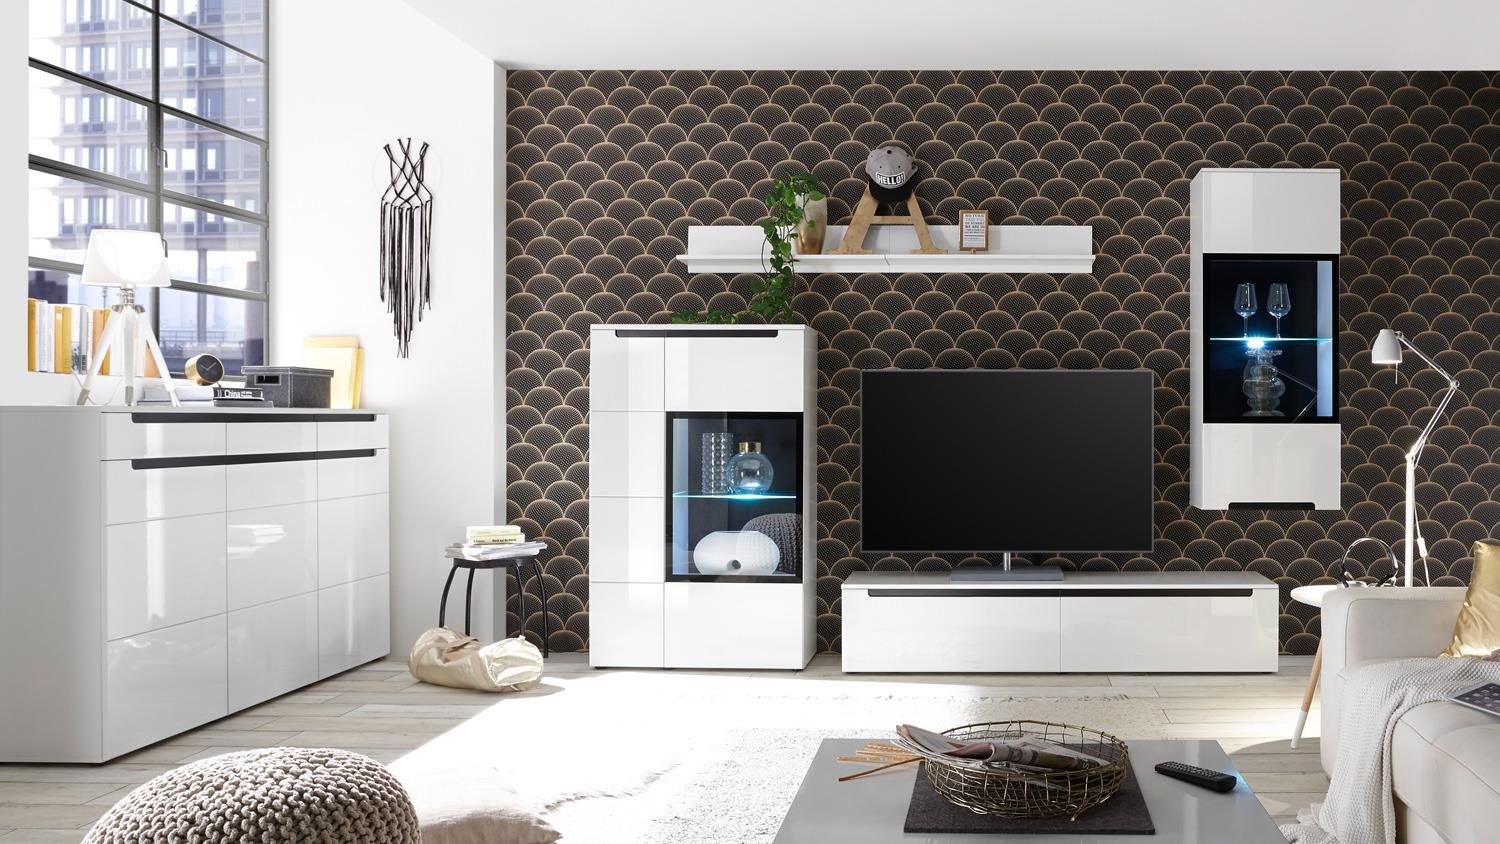 sideboard thor anrichte kommode wohnzimmer wei hochglanz mit 3 t ren. Black Bedroom Furniture Sets. Home Design Ideas